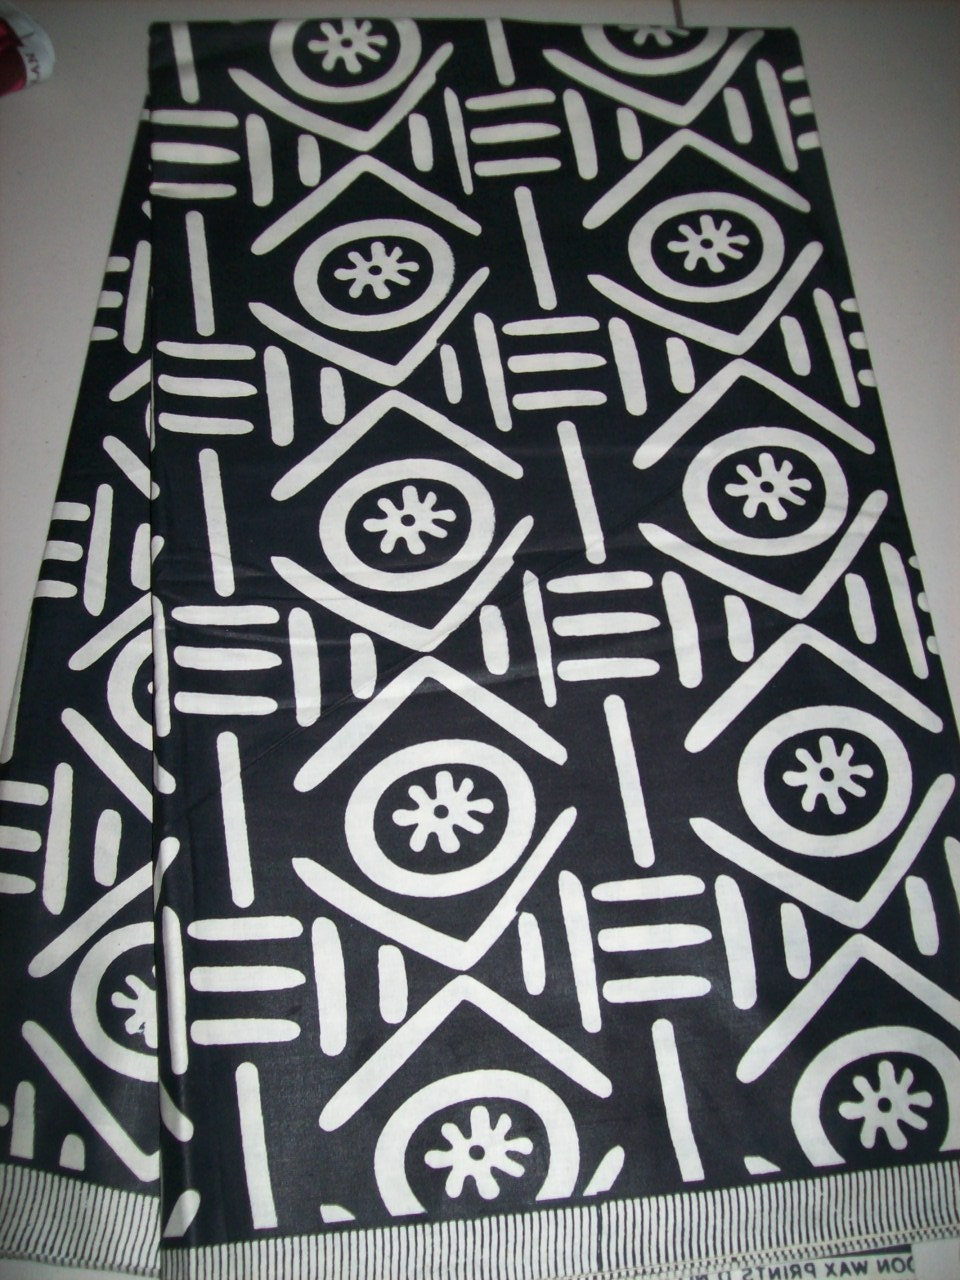 Tribal Ethnic Print Fabric From Mali Africa Per Yard African